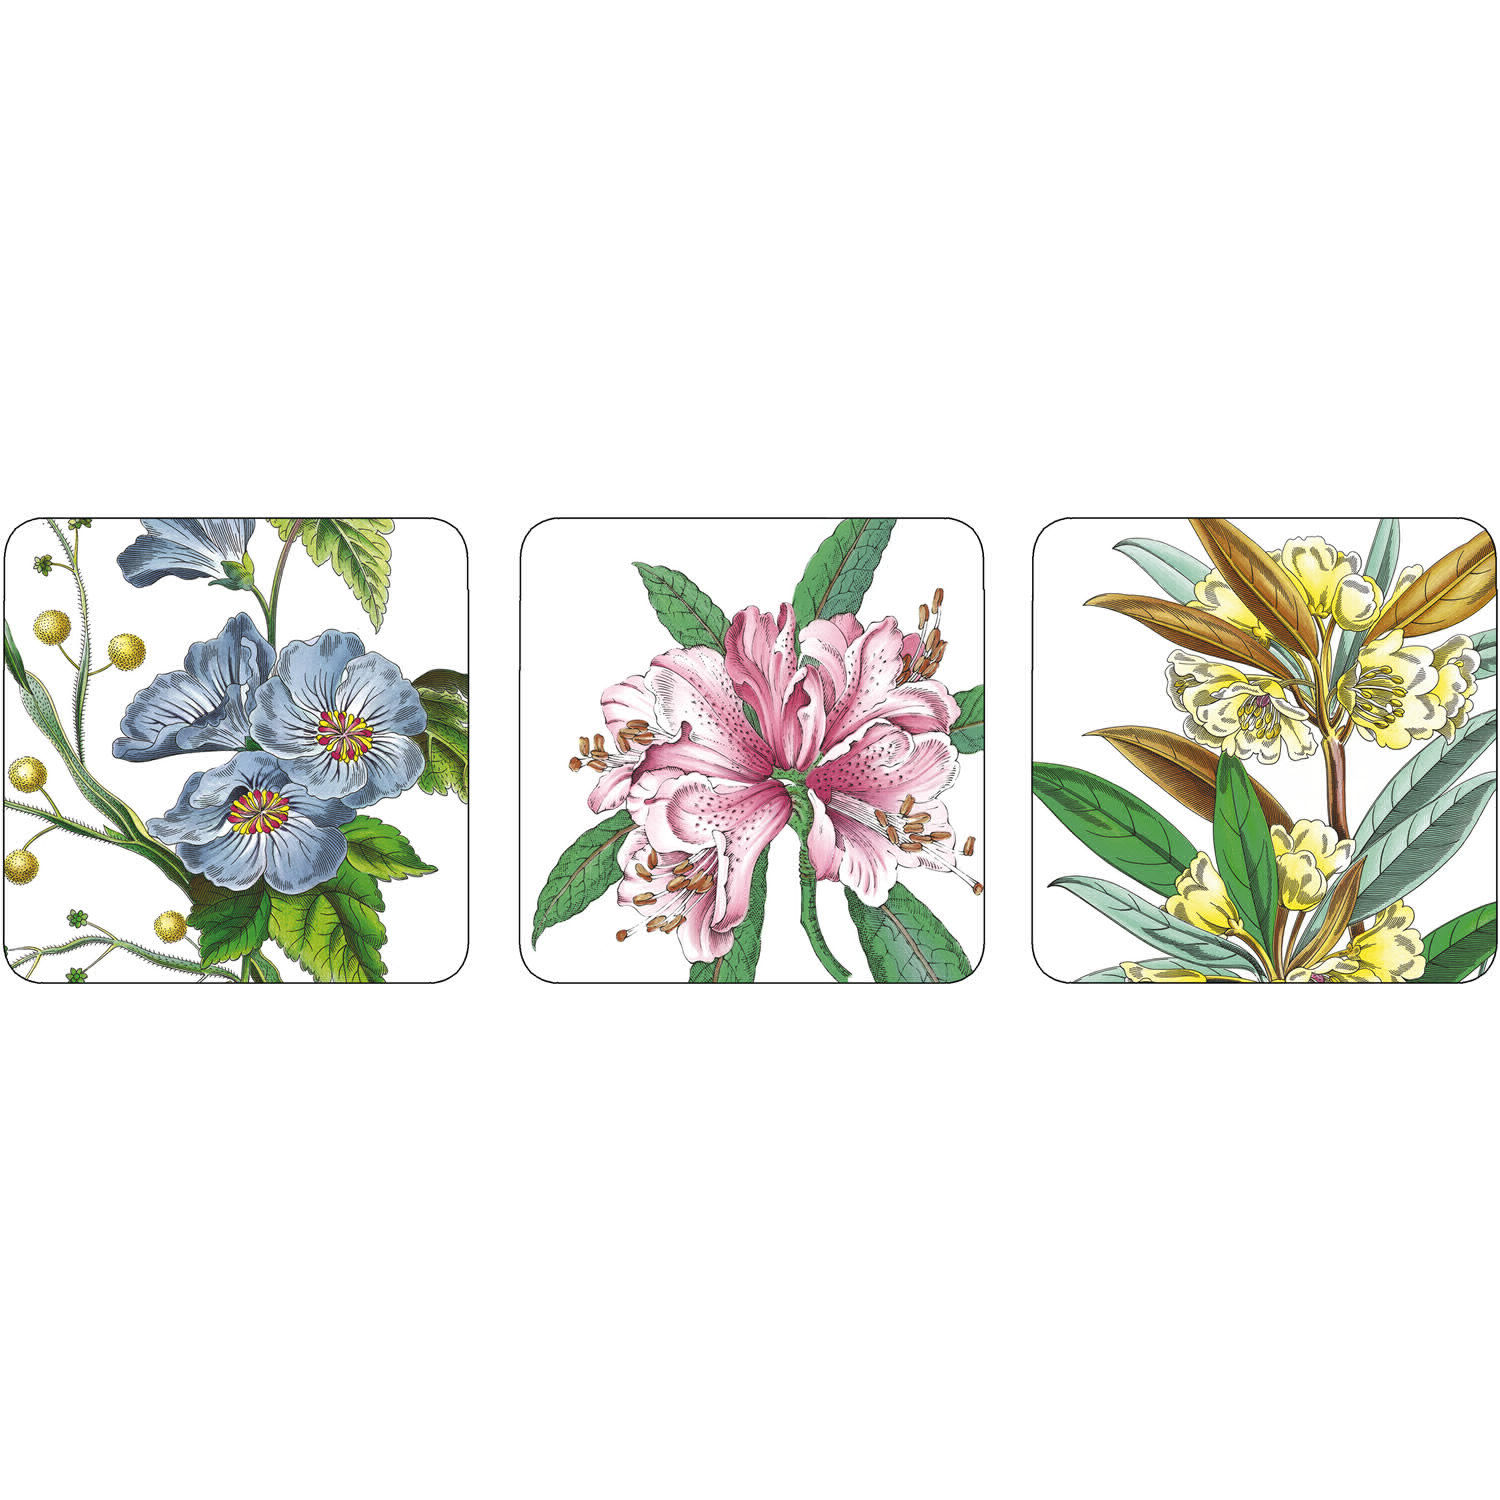 Pimpernel Fruits And Floral Stafford Blooms Coasters Set Of 6 Louis Potts